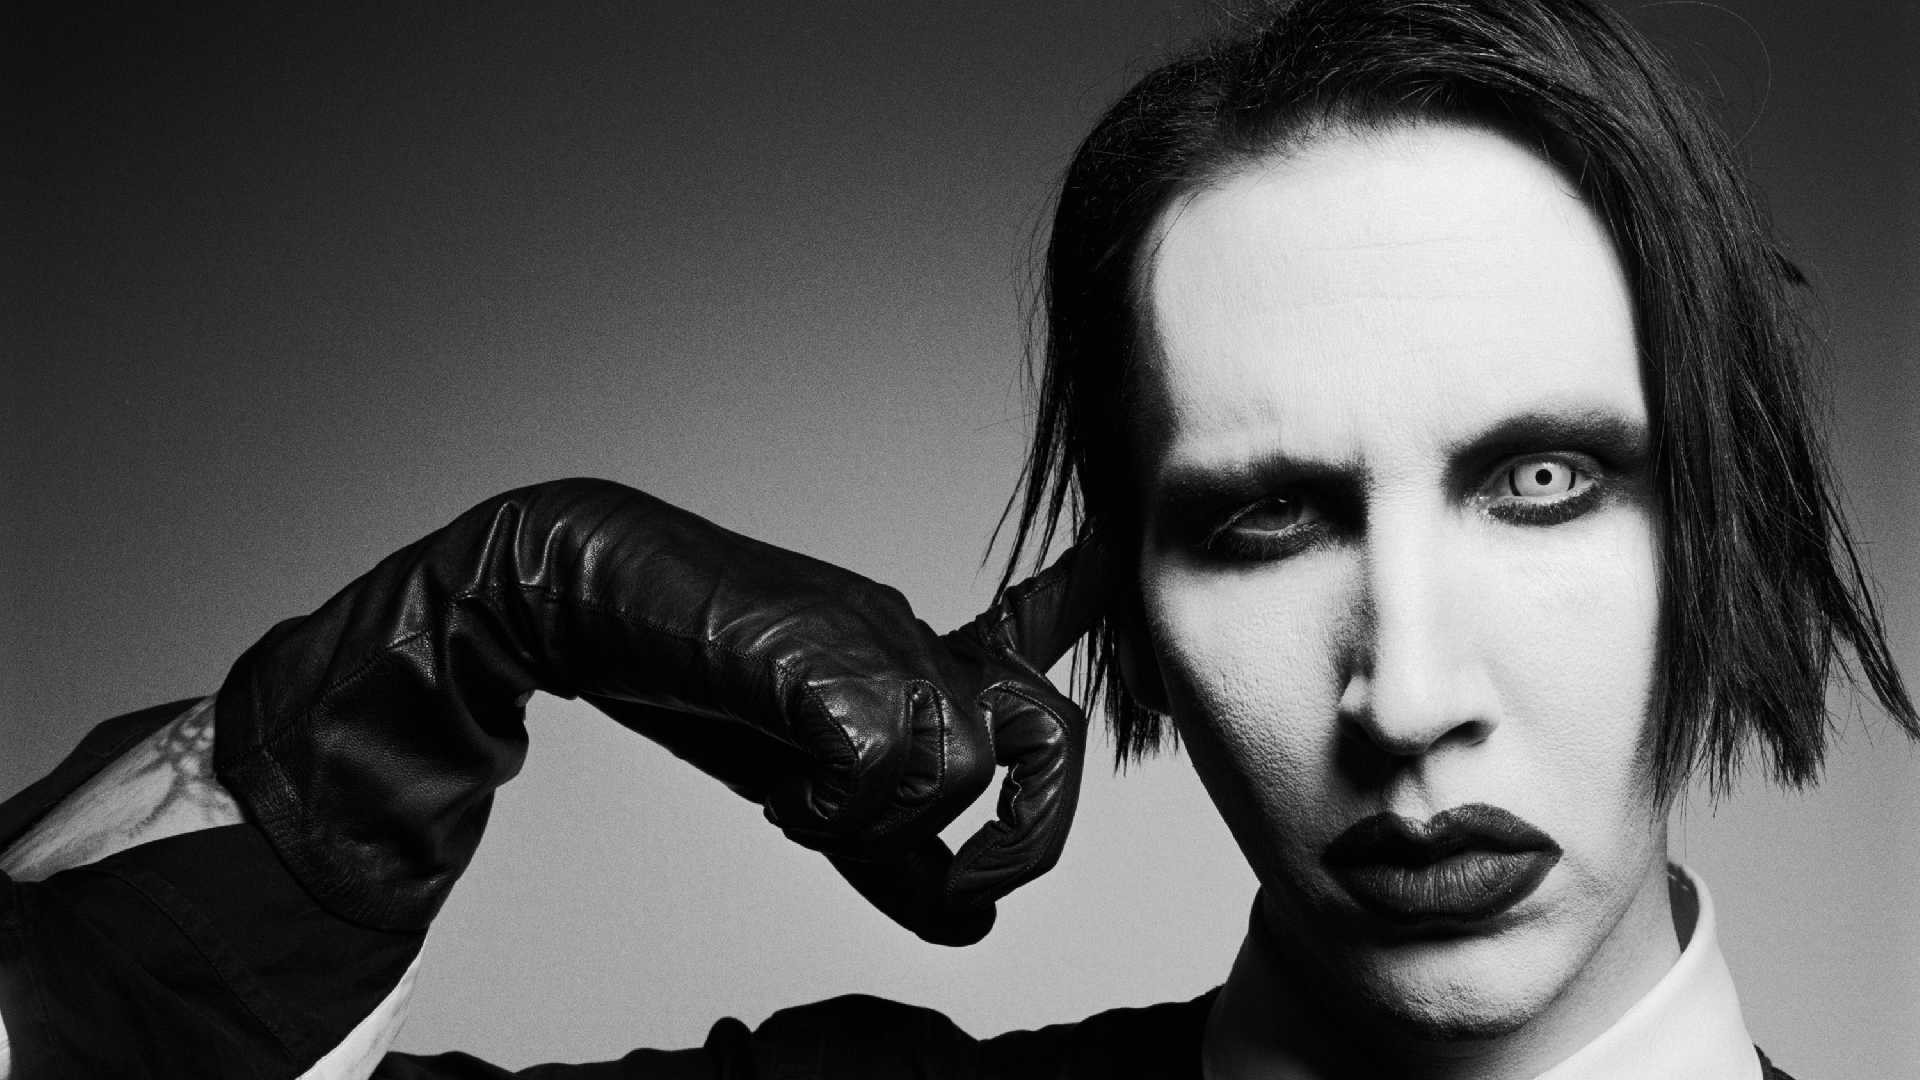 Marilyn Manson is an American rock band formed by namesake lead singer Marilyn Manson and guitarist Daisy Berkowitz in Fort Lauderdale Florida in 1989